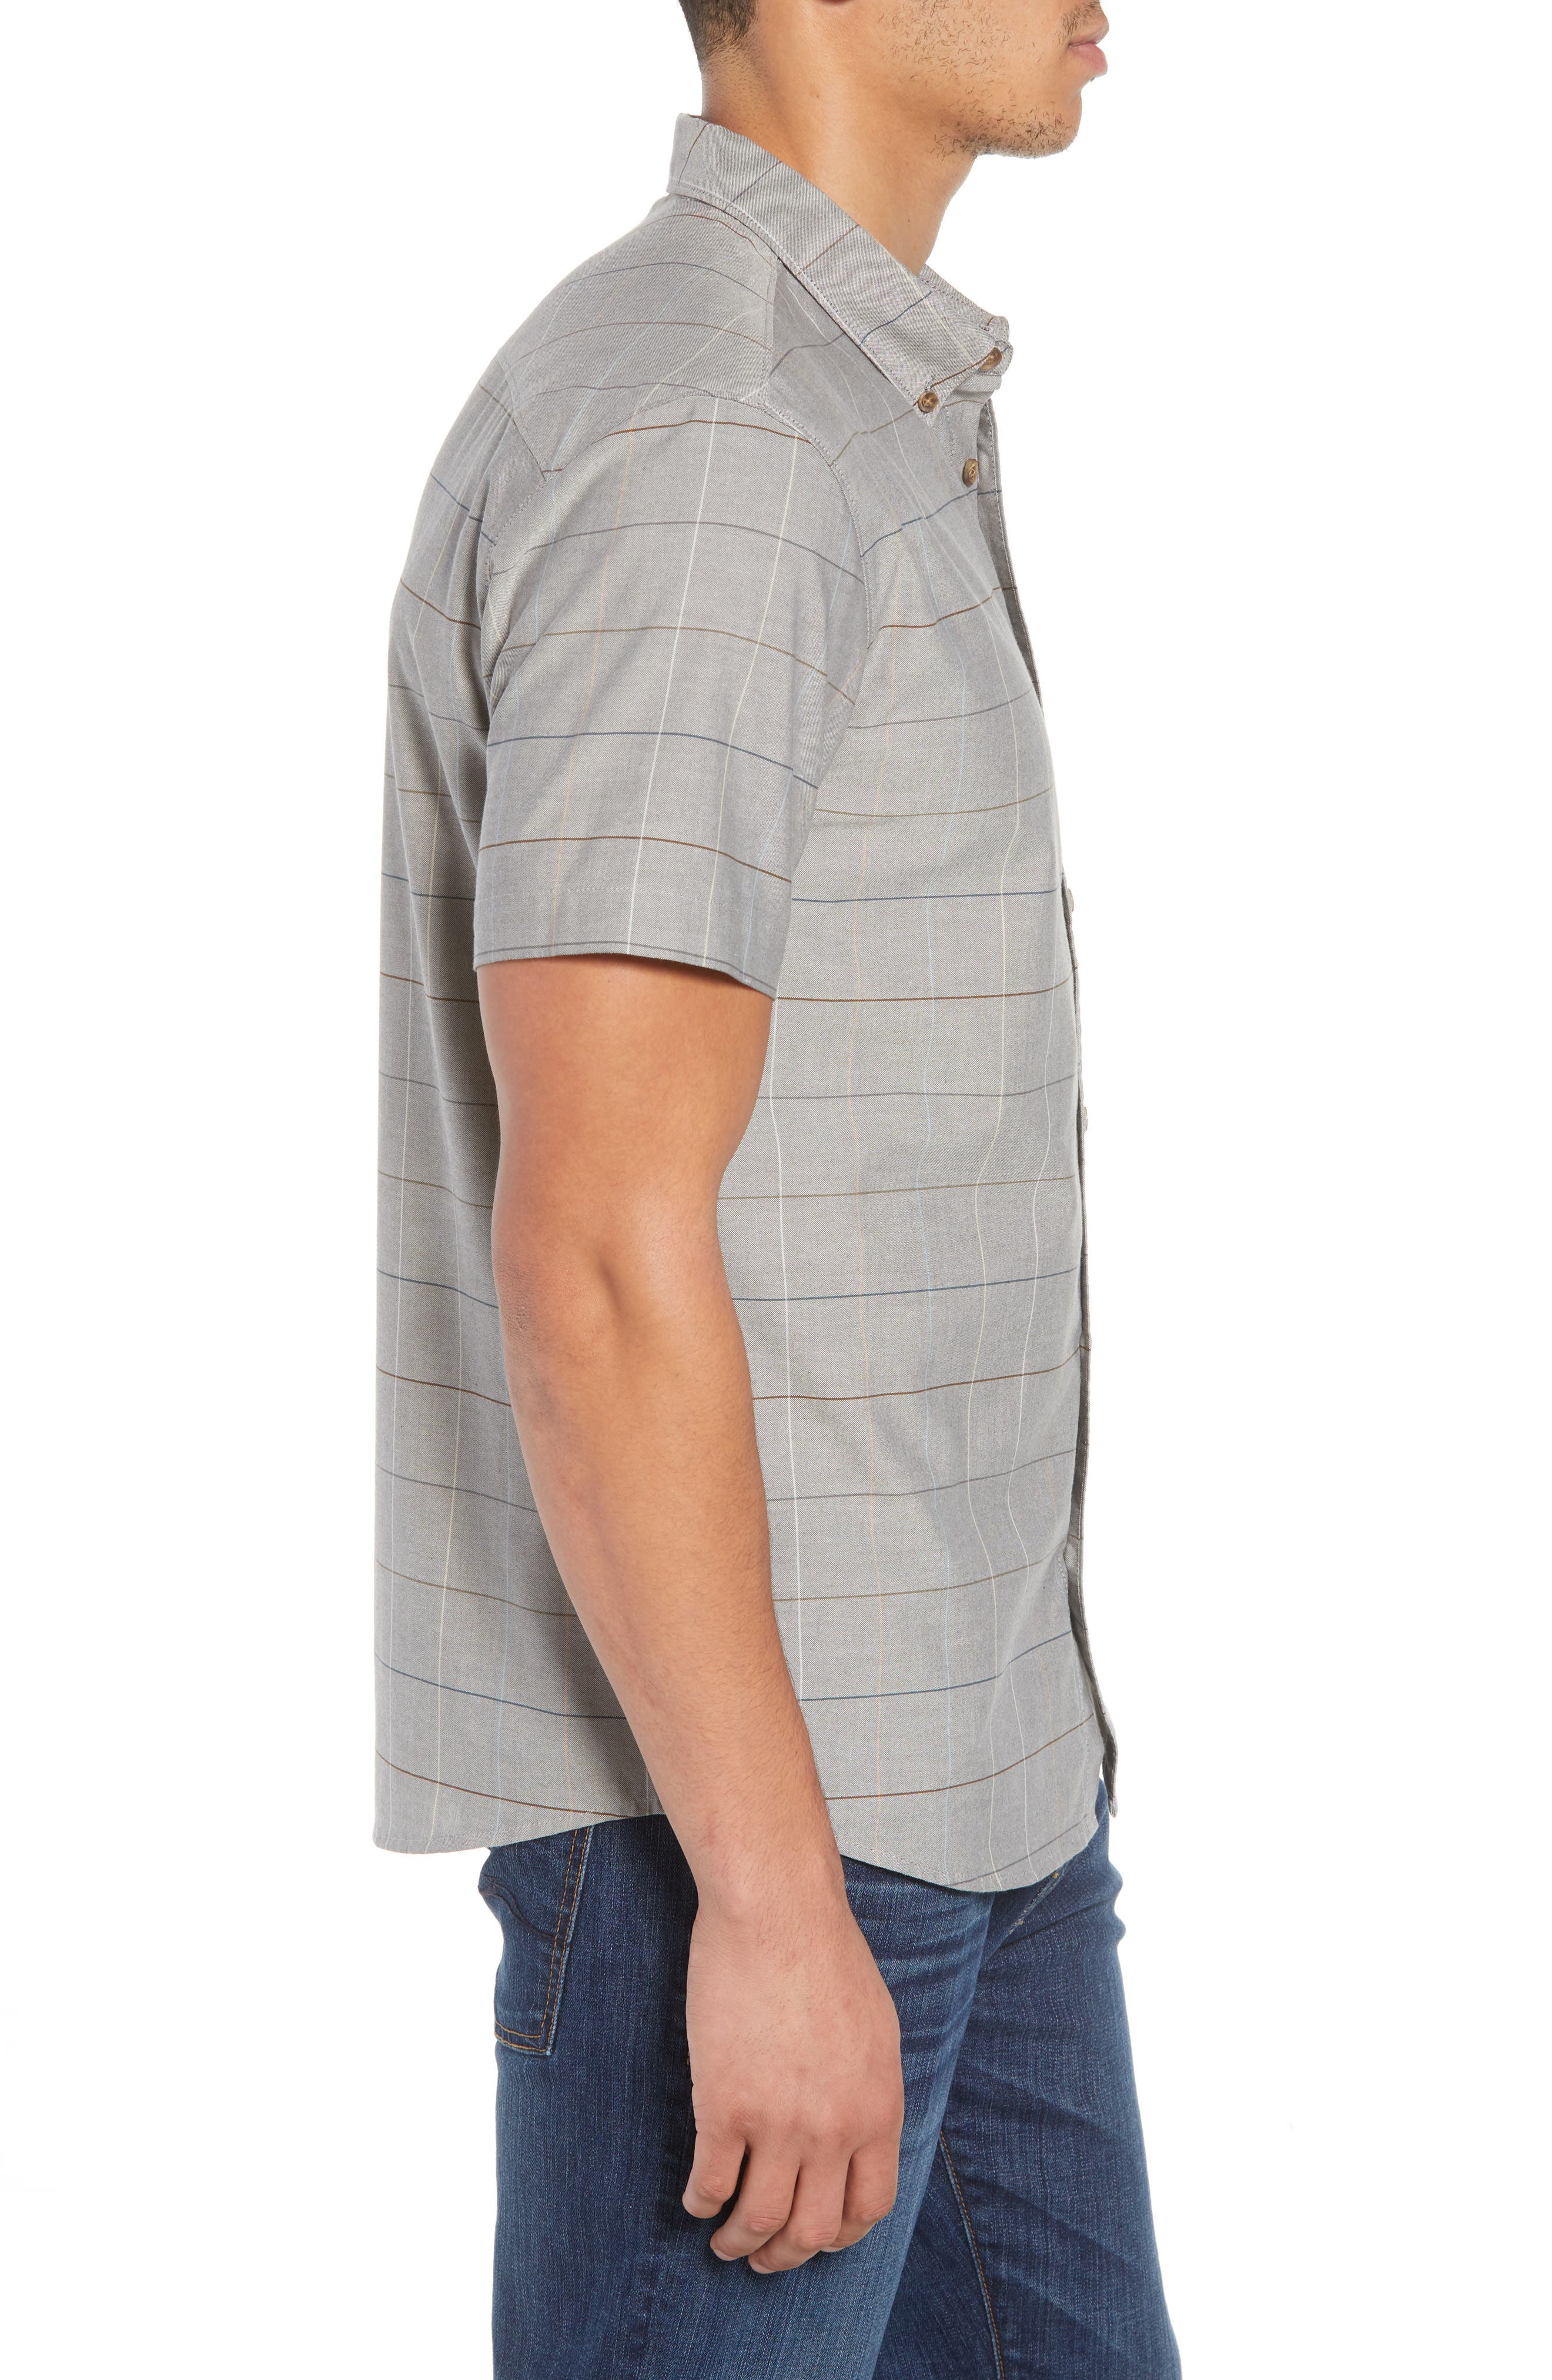 Gridlock Check Woven Shirt,                             Alternate thumbnail 3, color,                             020